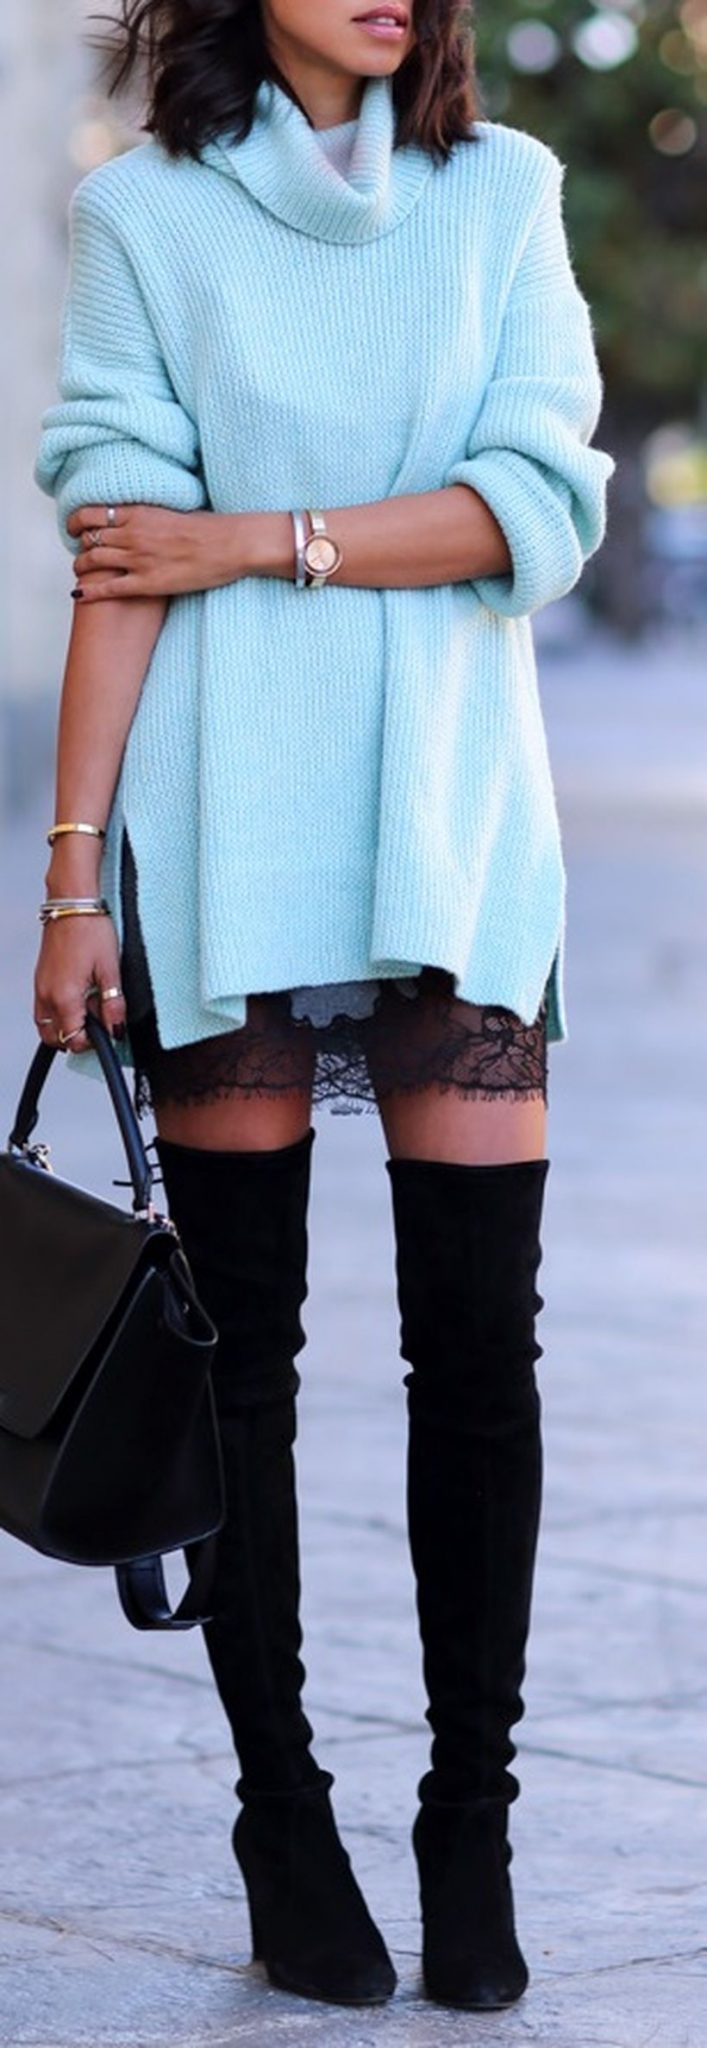 Trendy over the knee boots for winter and fall outfits 18